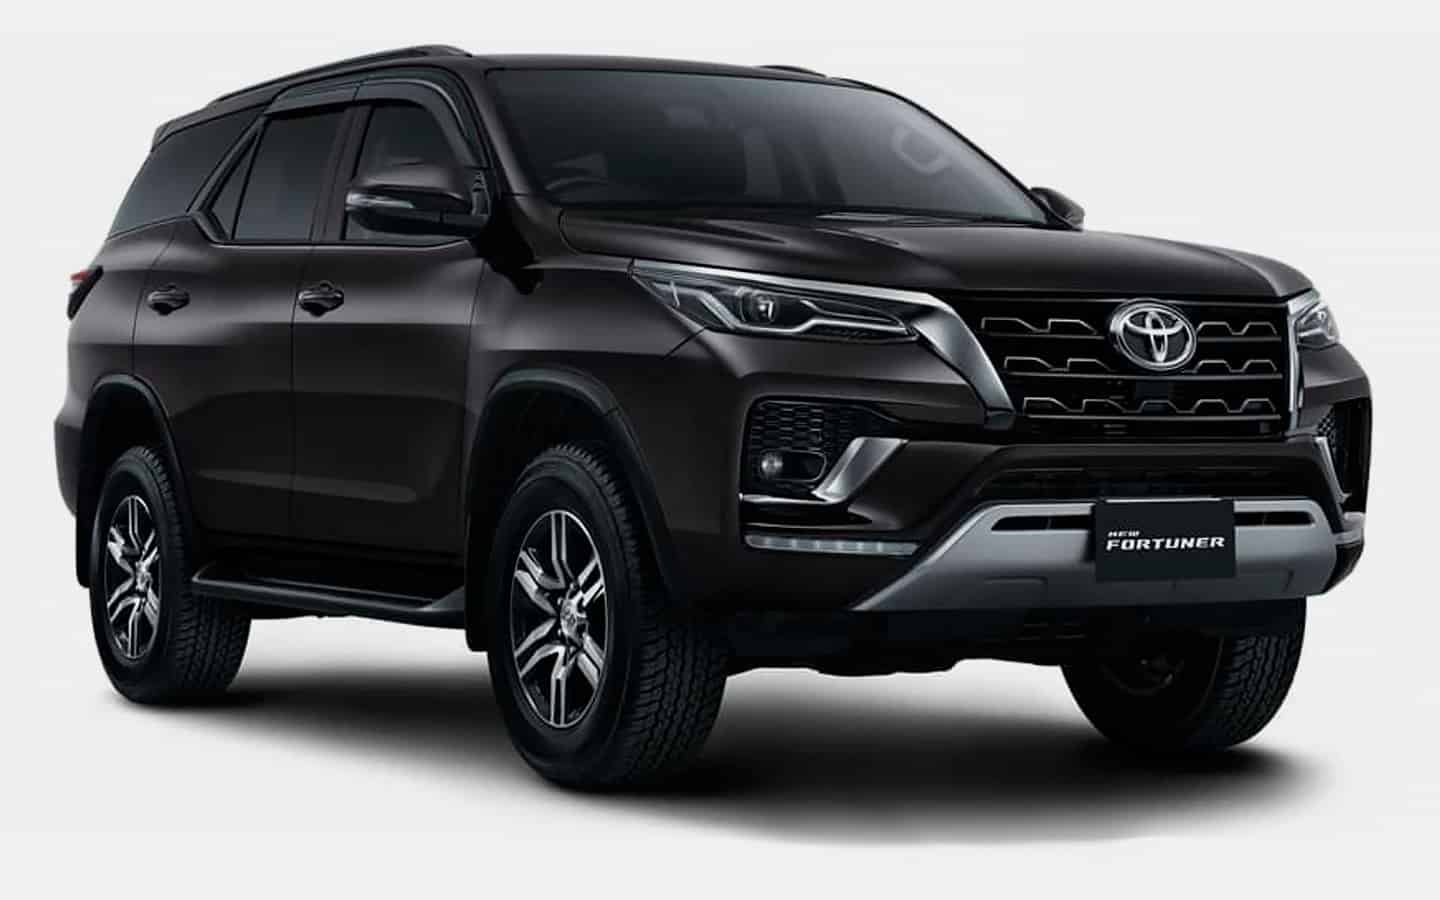 The Toyota Fortuner SUV has a new version of the GR Sport